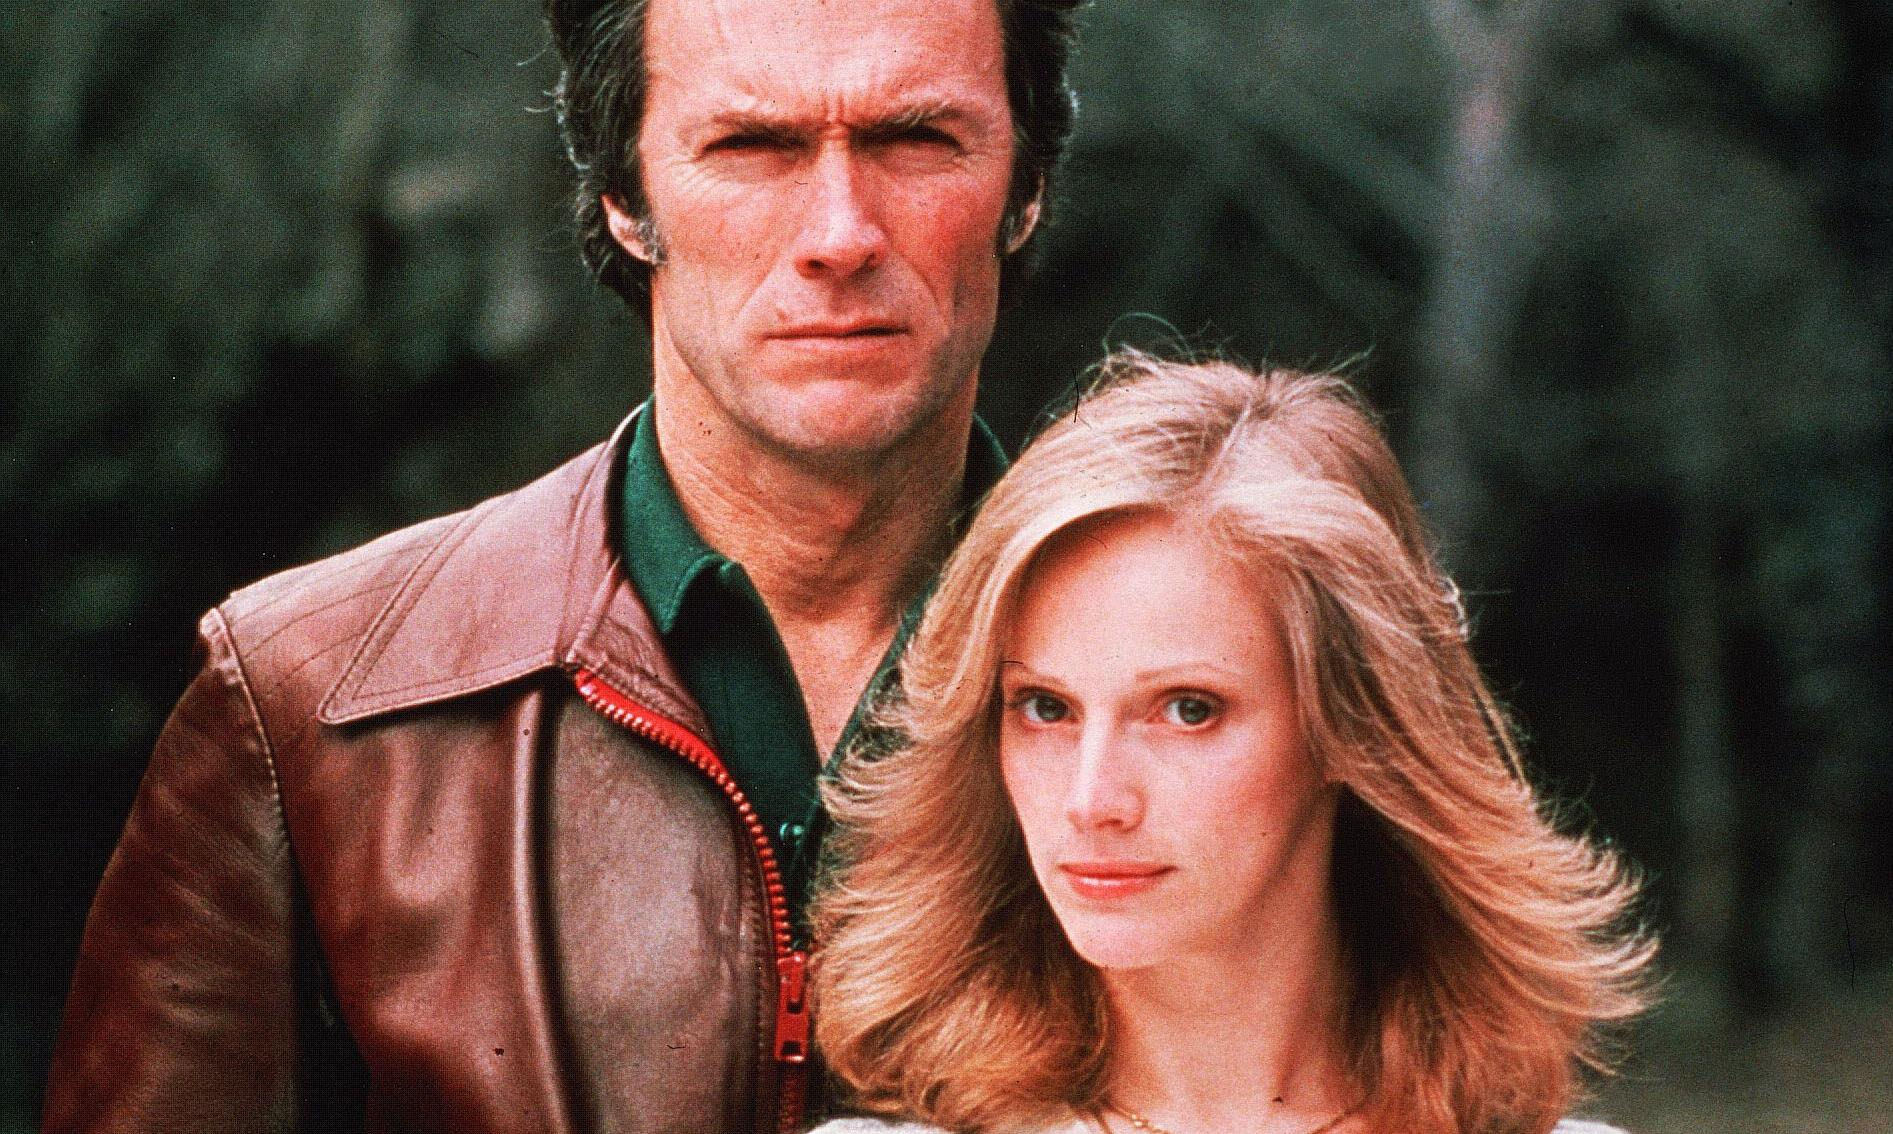 Sondra Locke: a charismatic performer defined by a toxic relationship with Clint Eastwood